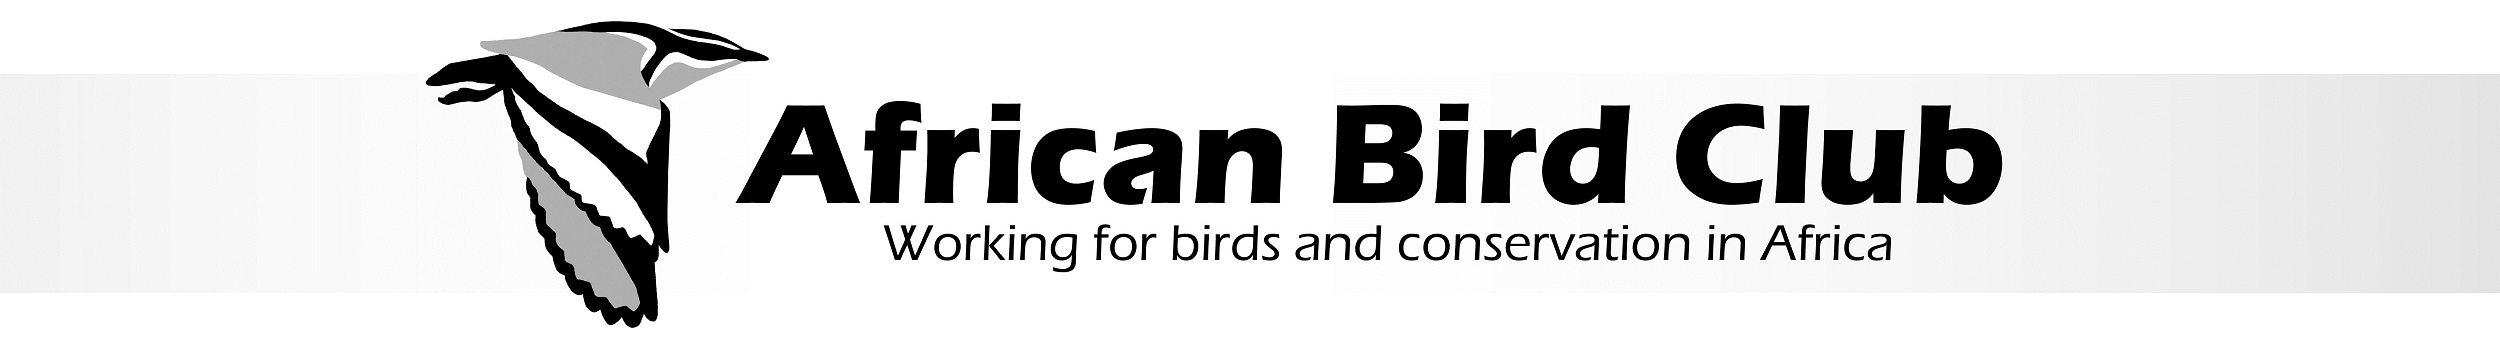 logo for African Bird Club